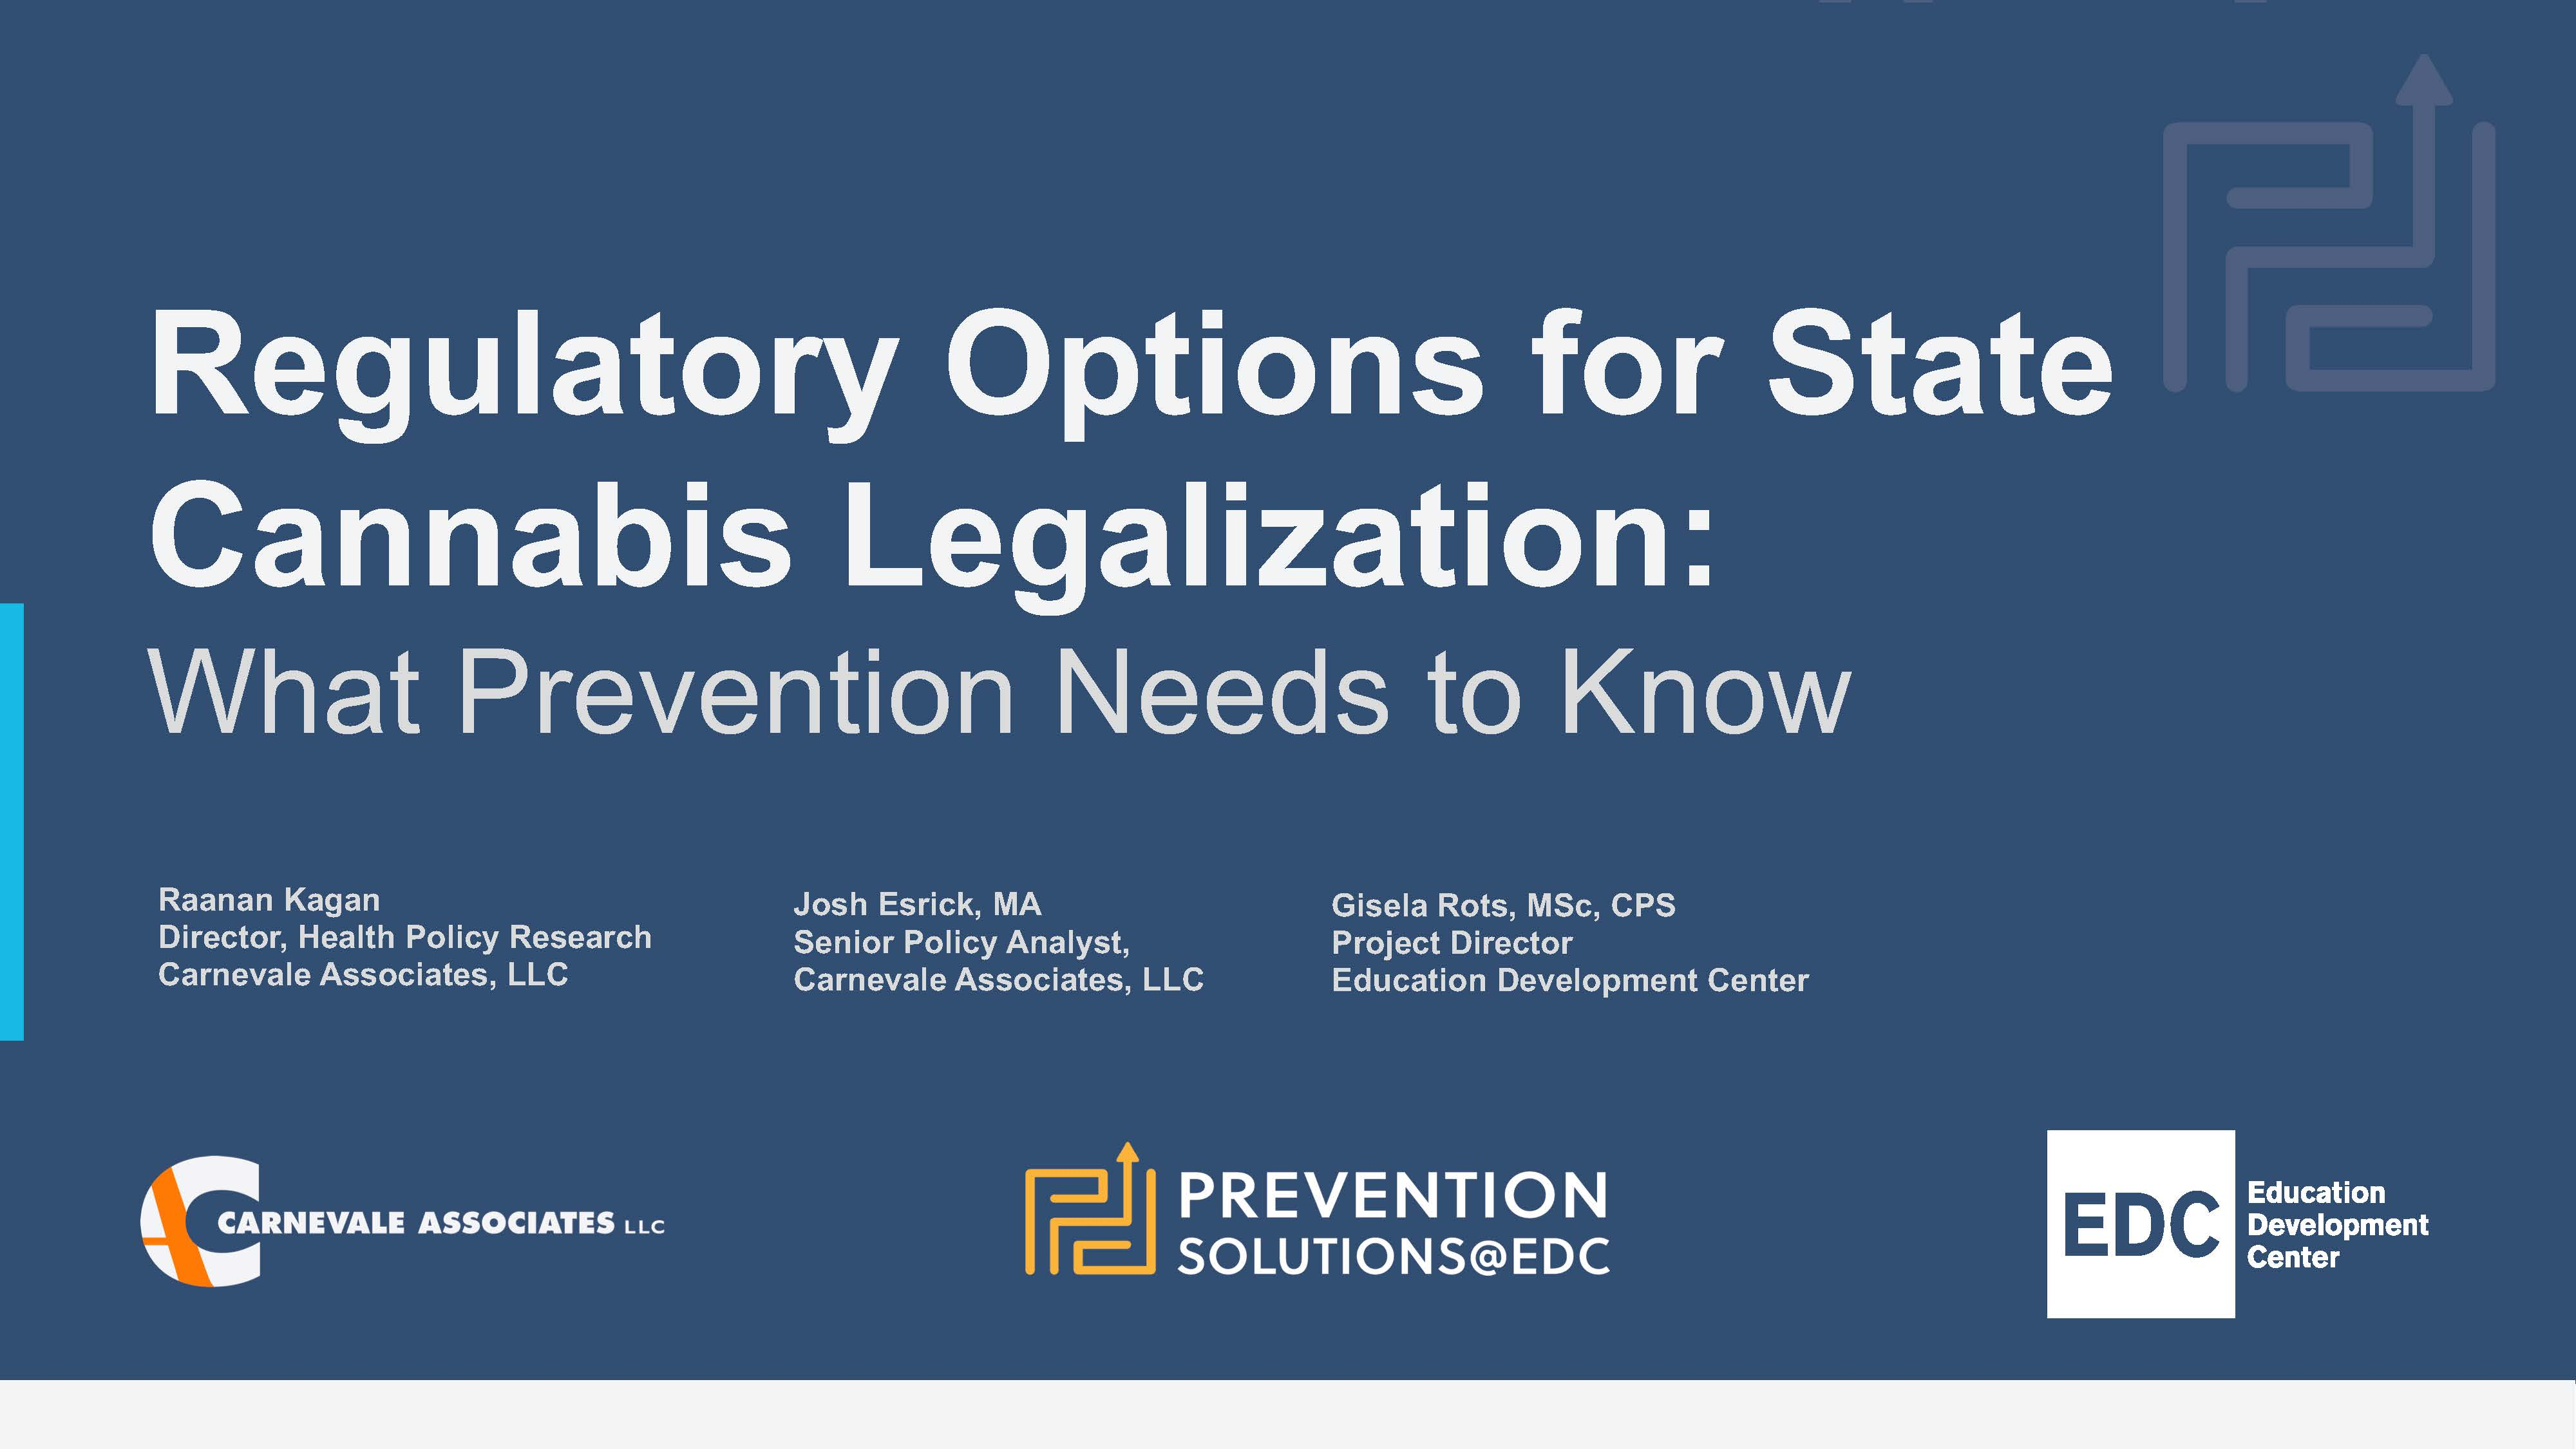 Regulatory Options for State Cannabis Legalization: What Prevention Needs to Know